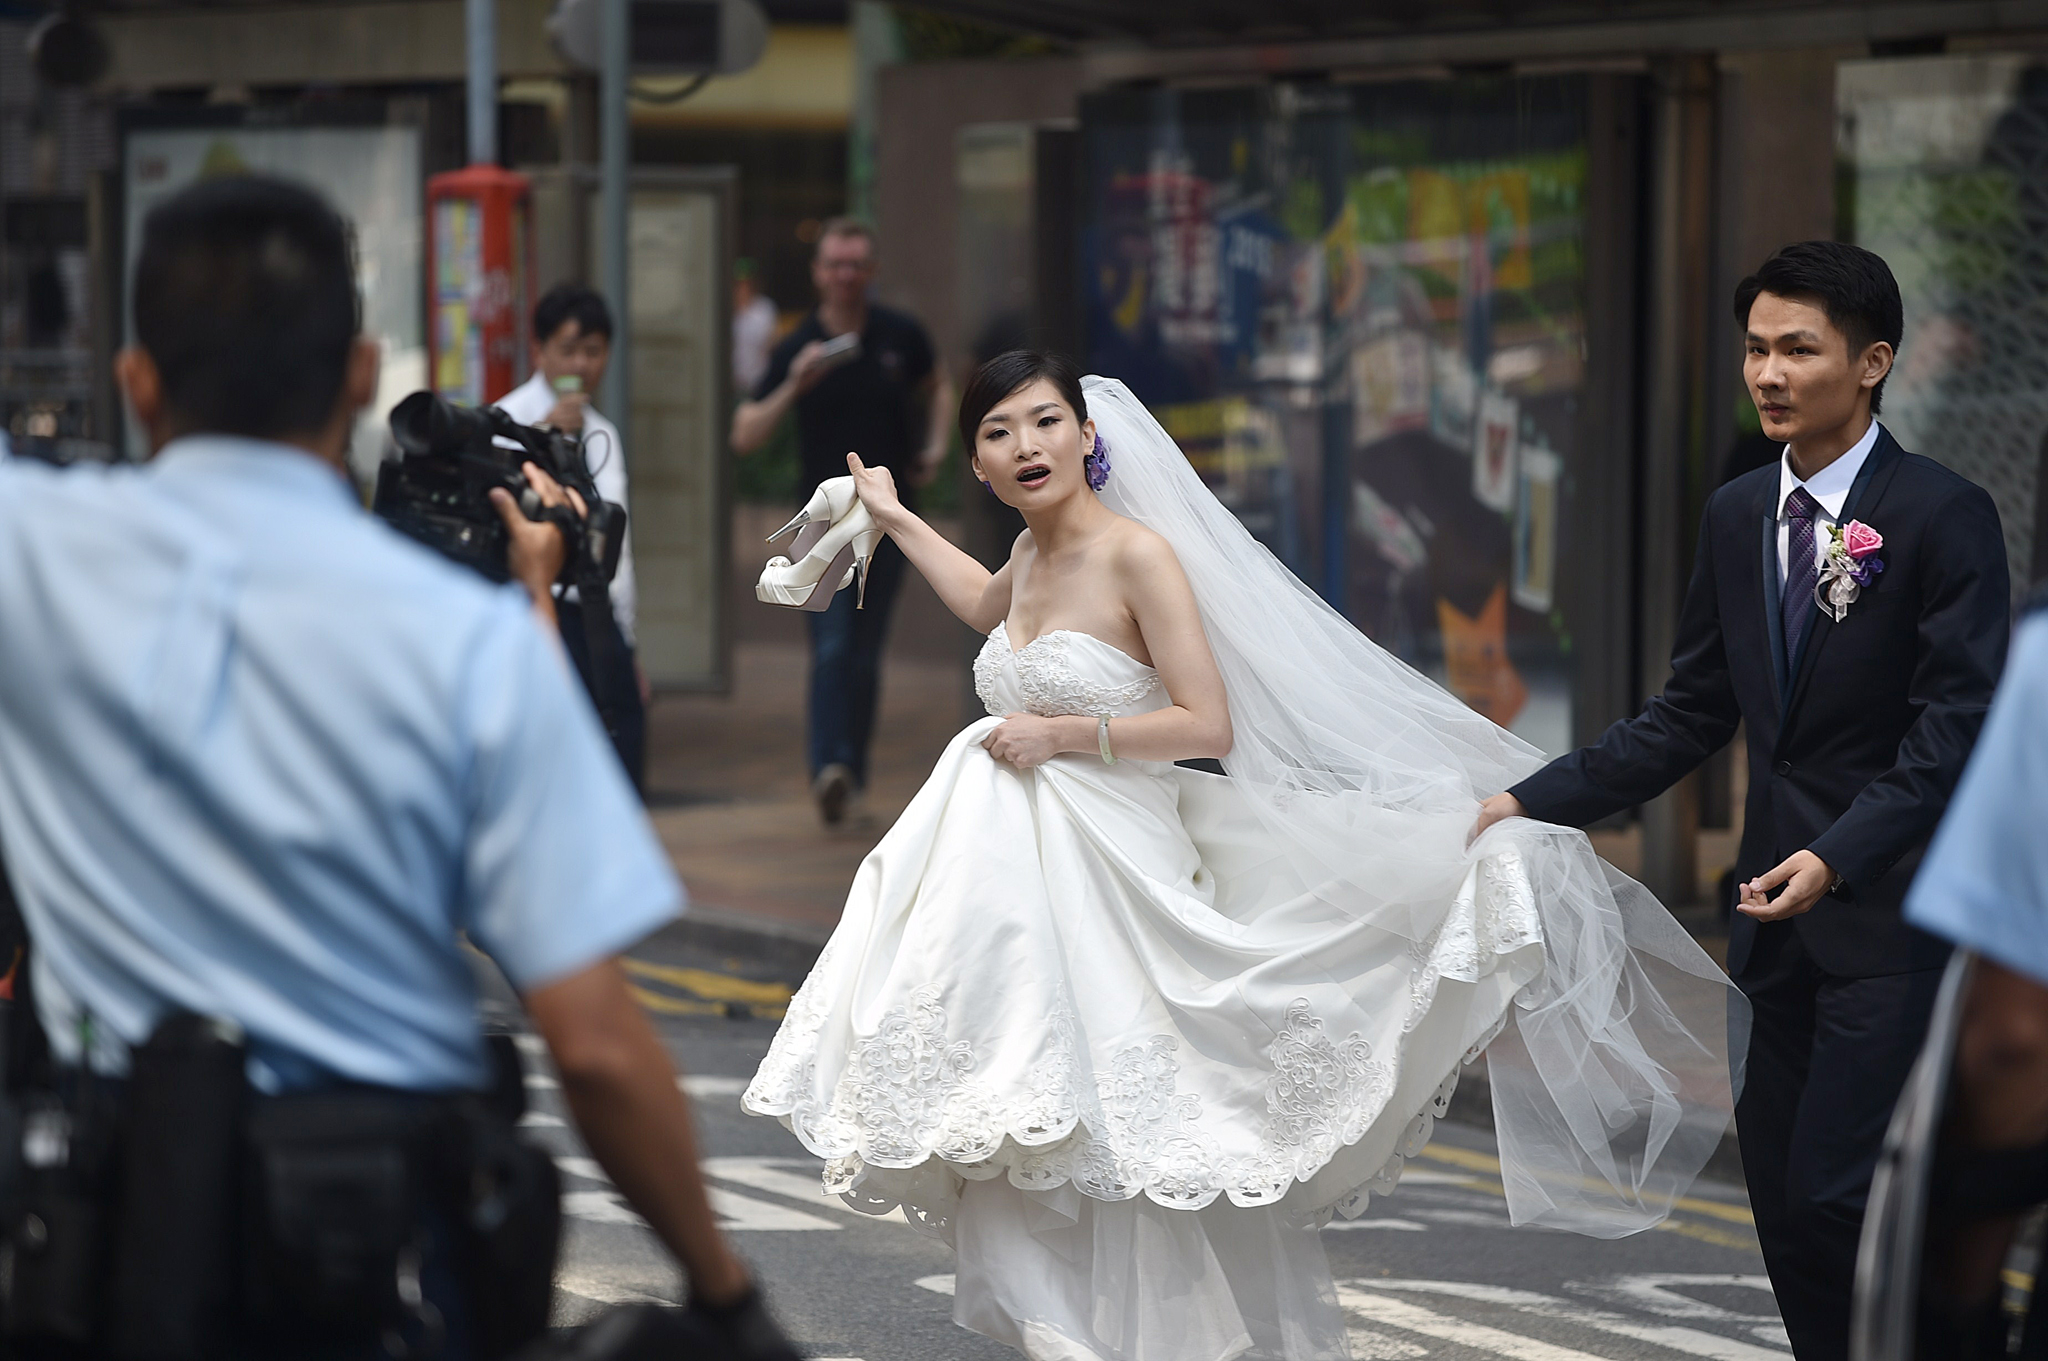 A wedding couple speak to police officer...A wedding couple speak to police officers as they try to leave the area of a pro-democracy protest in the Admiralty district of Hong Kong on October 14, 2014.  Dozens of police removed barricades from a second Hong Kong protest site,  a day after a similar attempt at the city's main occupied area largely backfired as demonstrators rebuilt and reinforced their defences.  AFP PHOTO/Pedro UgartePEDRO UGARTE/AFP/Getty Images